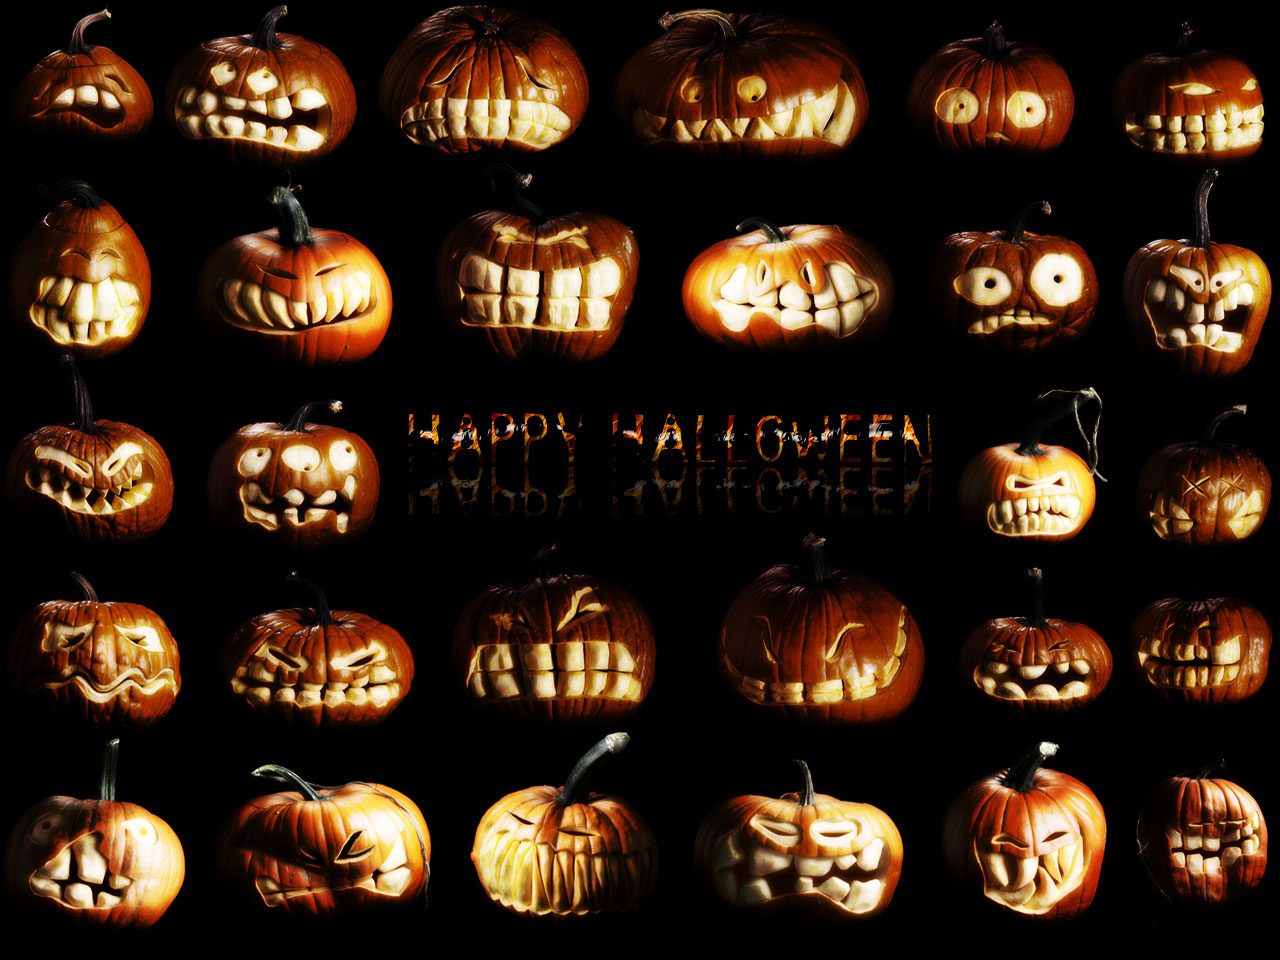 Awesome Happy Halloween Pumpkins Wallpaper HD